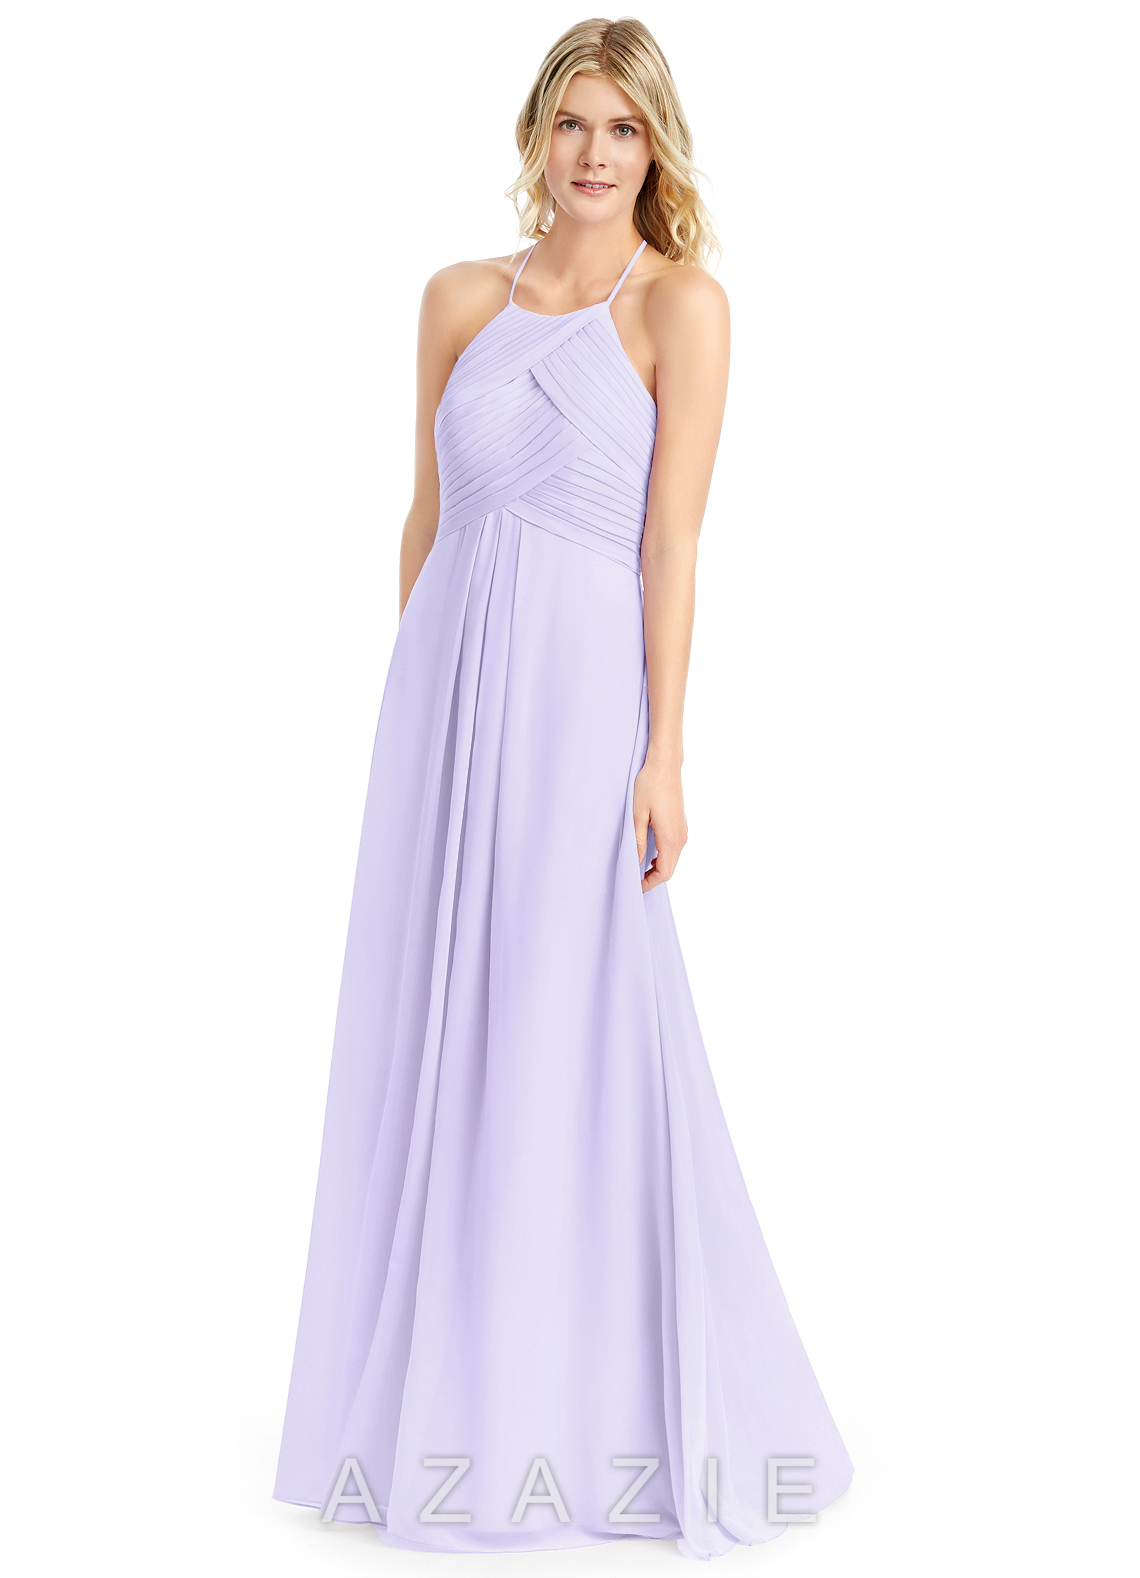 Azazie ginger bridesmaid dress azazie color lilac ombrellifo Images